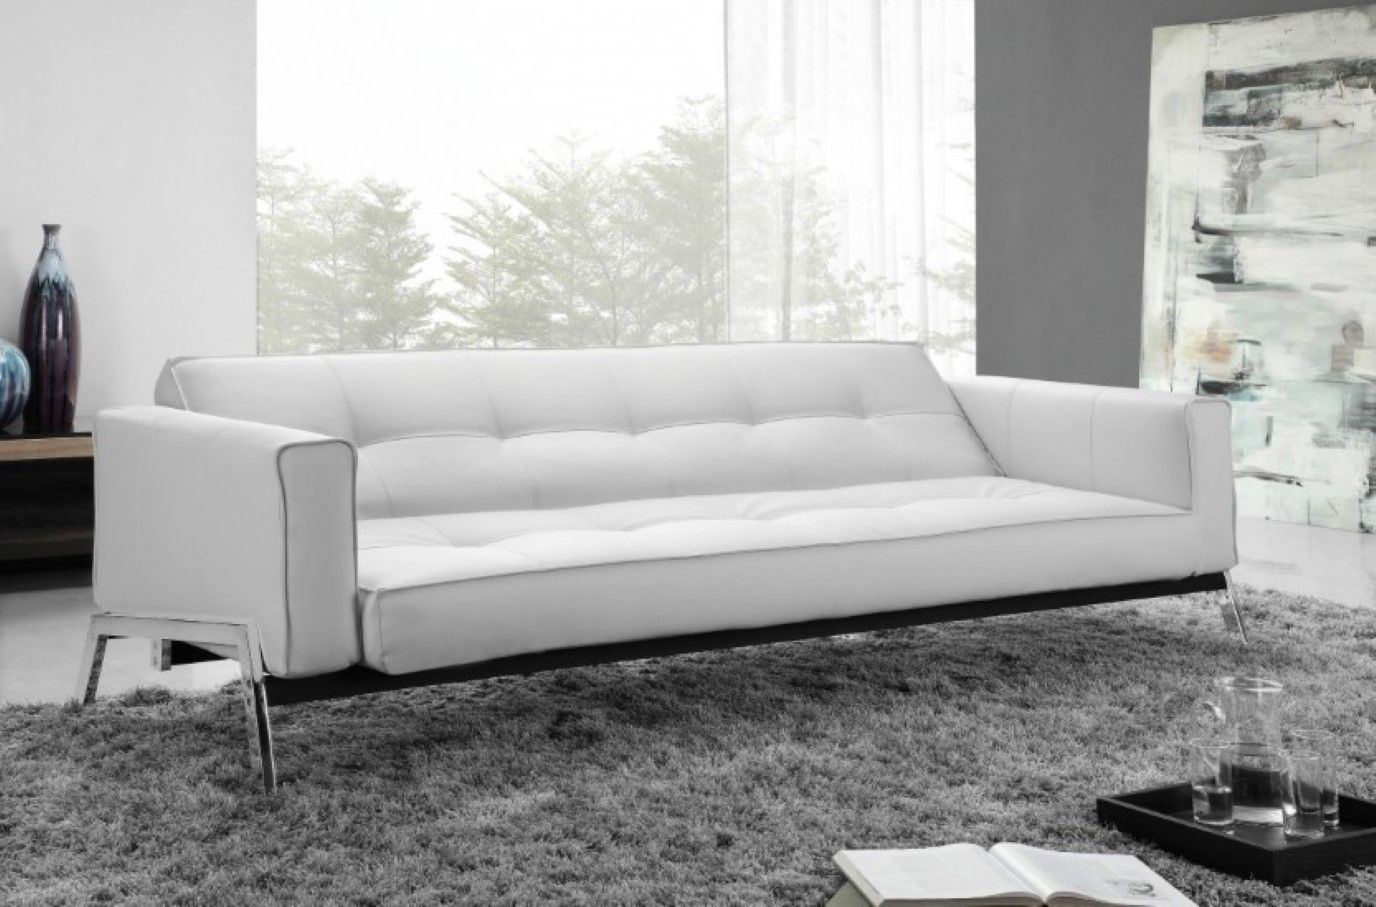 White Leather Convertible Sofa | Leather Futon Sofa Bed Brown ...